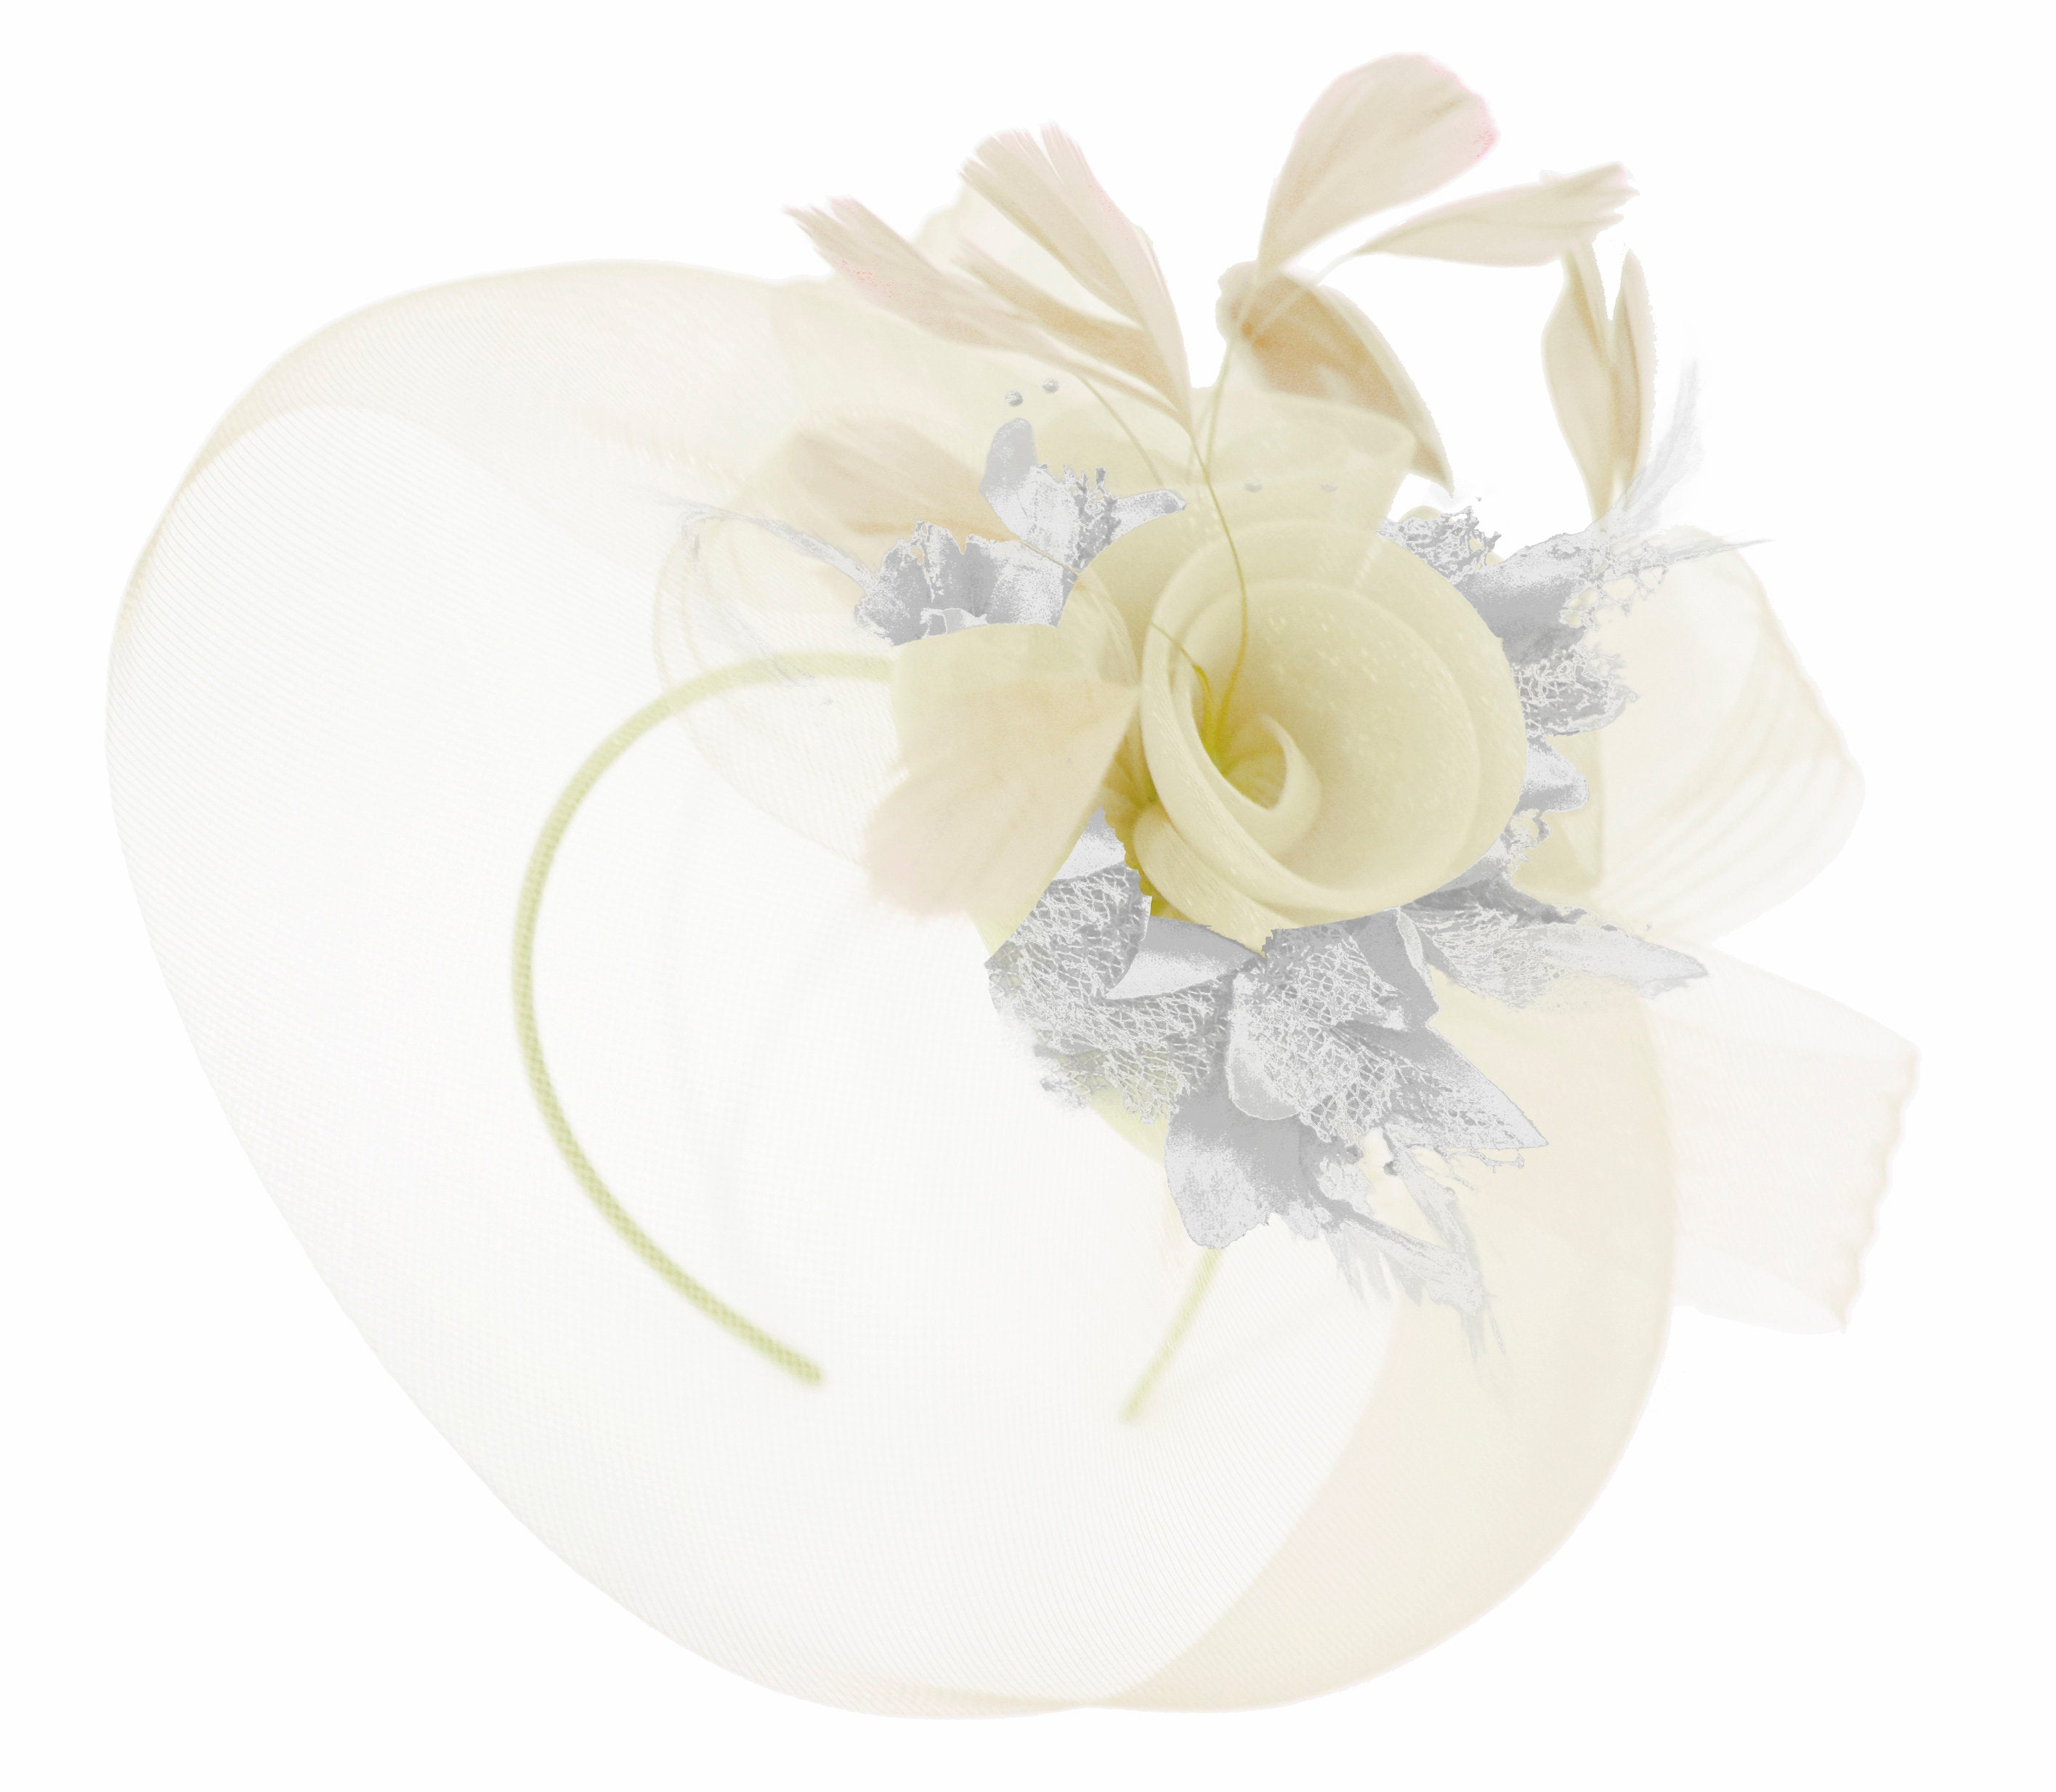 Caprilite Cream and Silver Fascinator on Headband Veil UK Wedding Ascot Races Hatinator Women